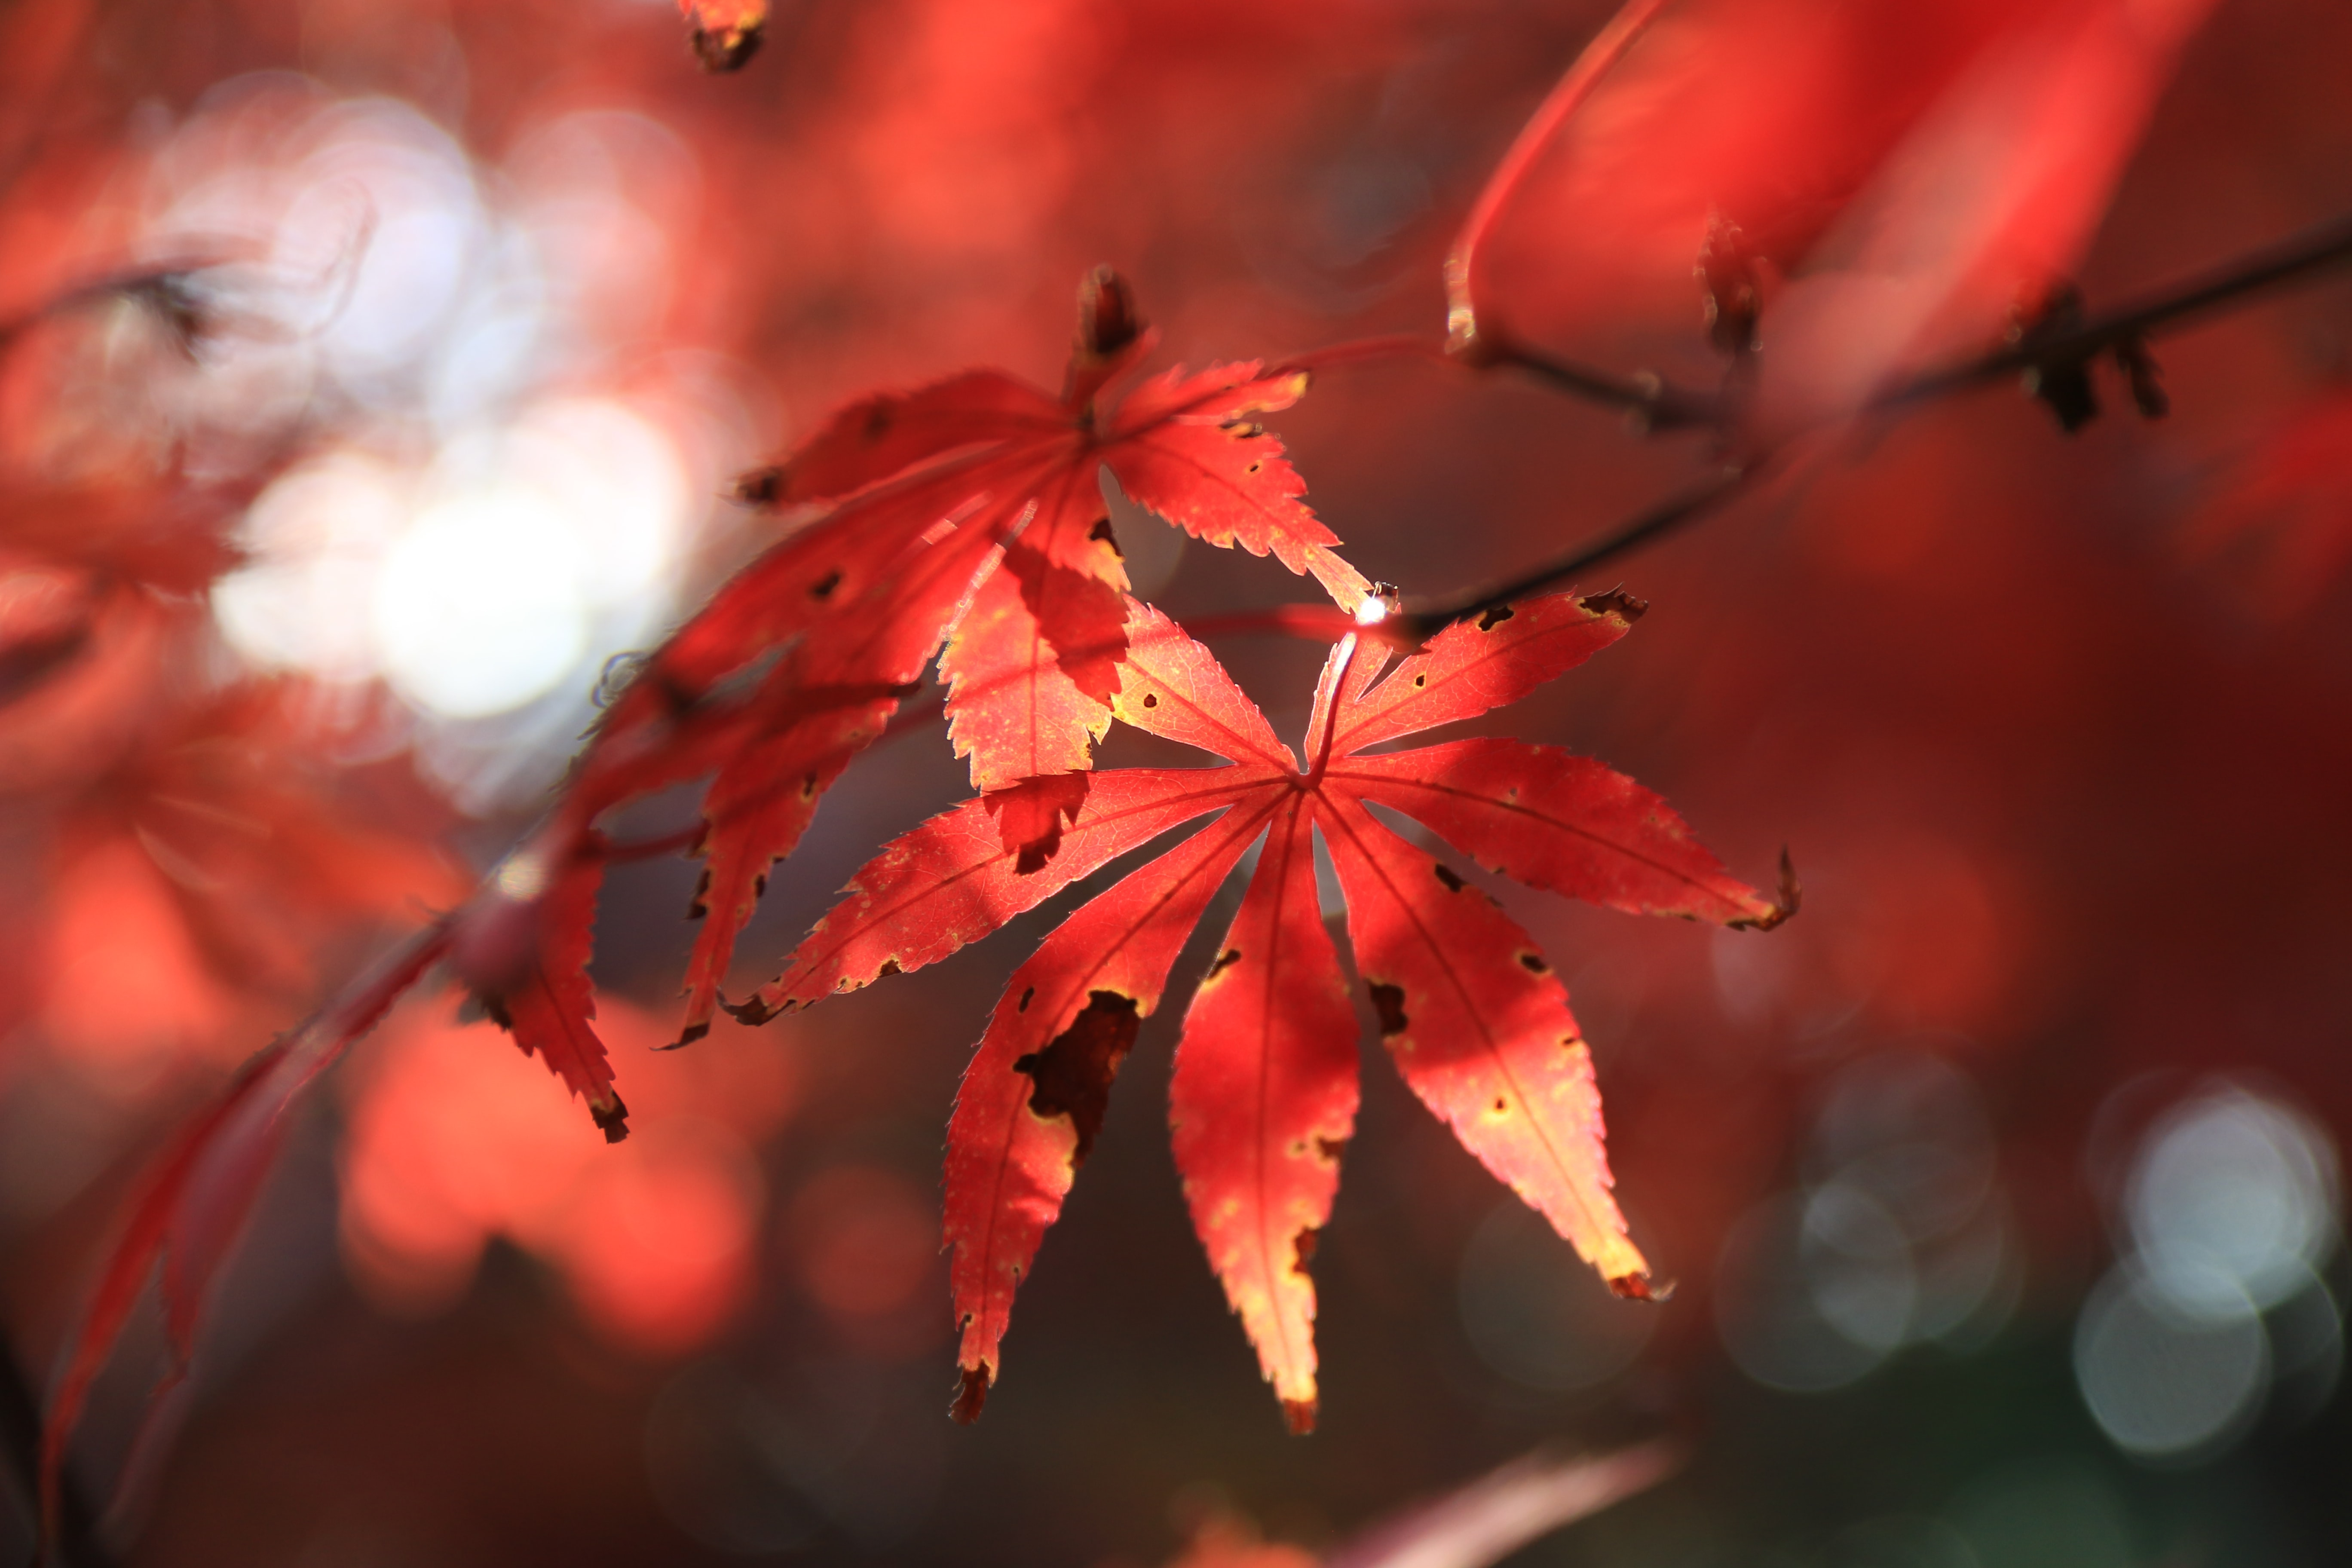 closeup photo of red leafed plant